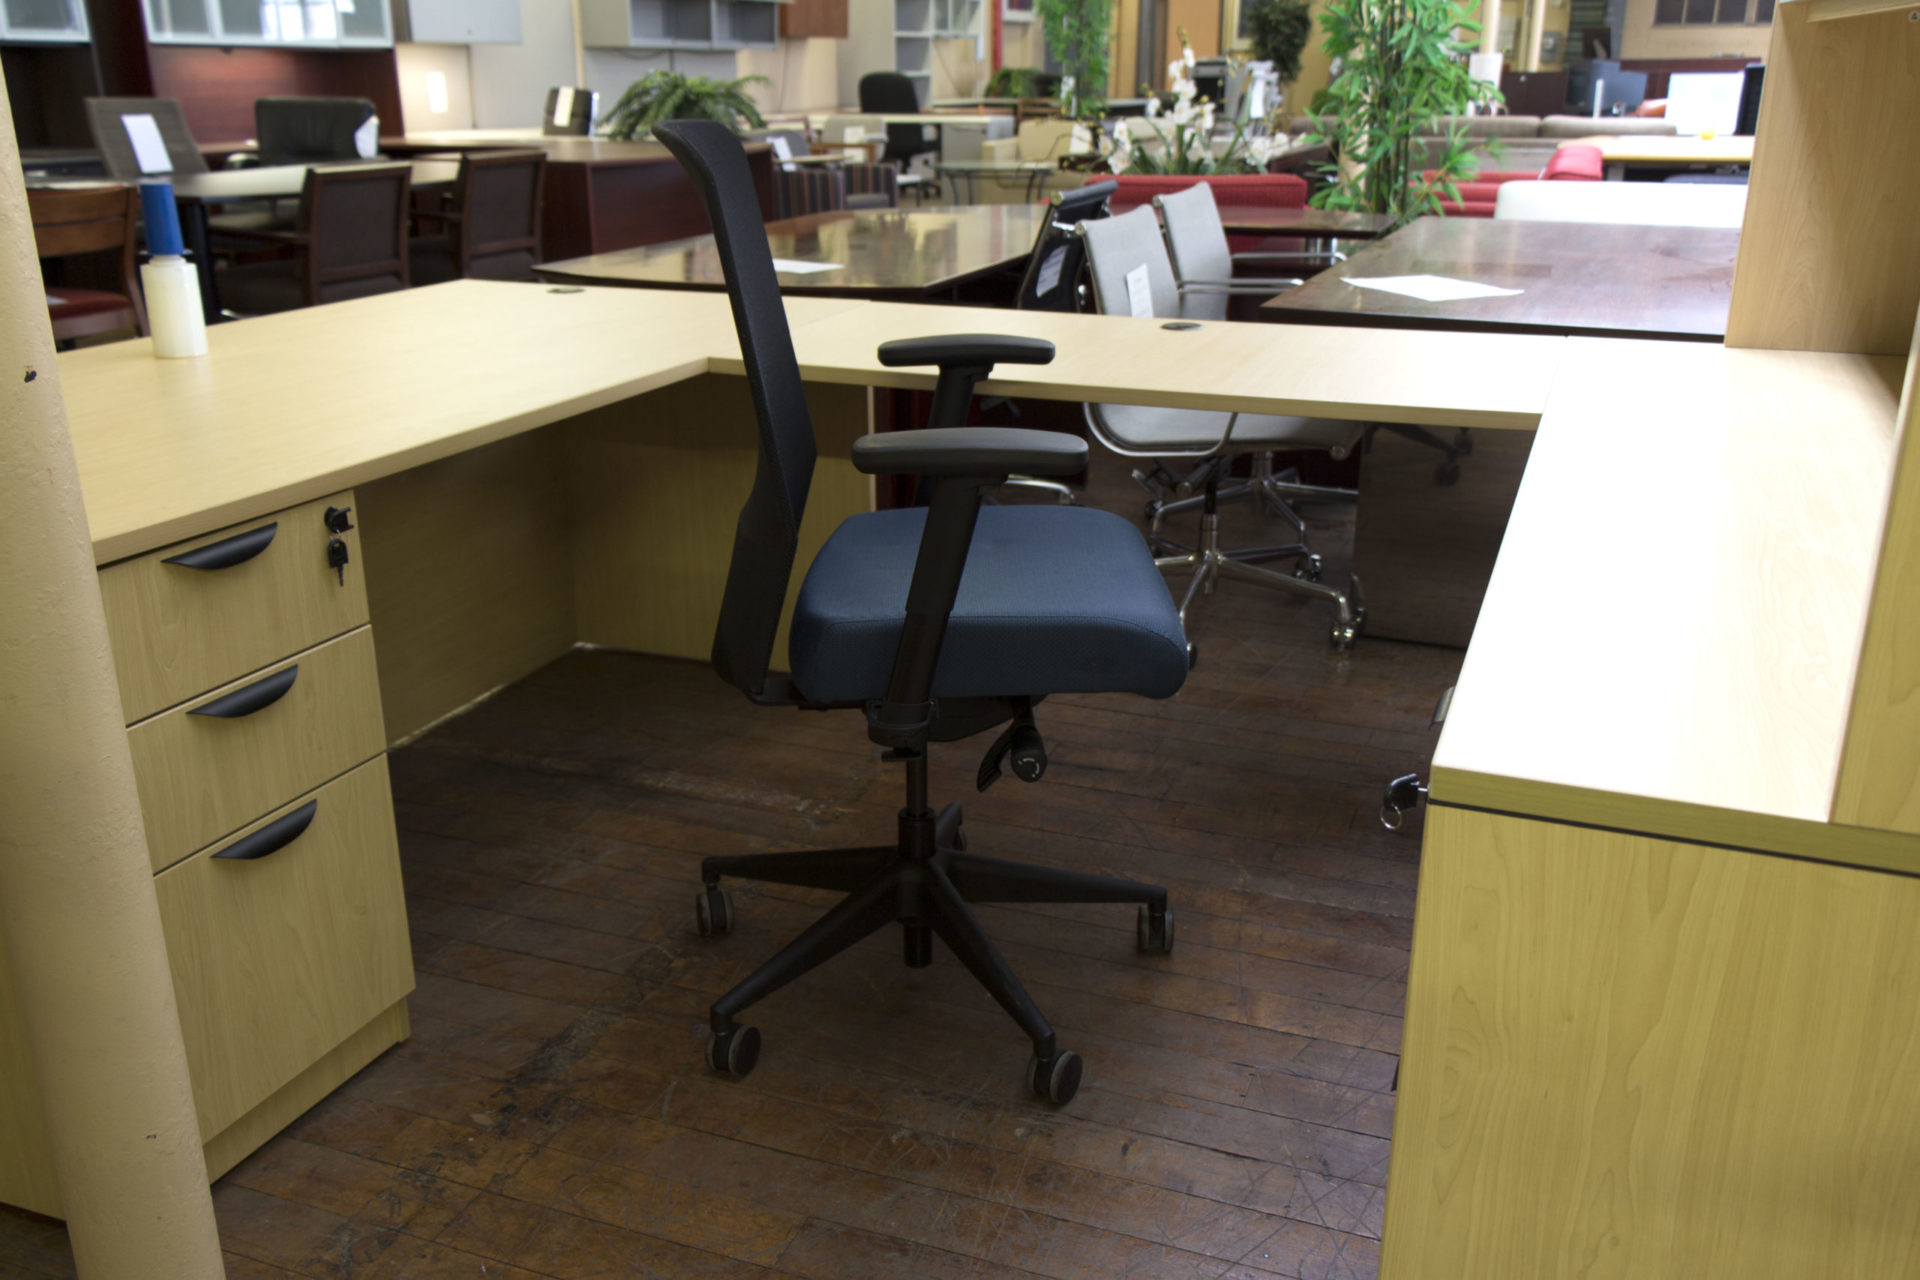 peartreeofficefurniture_peartreeofficefurniture_mg_5531.jpg